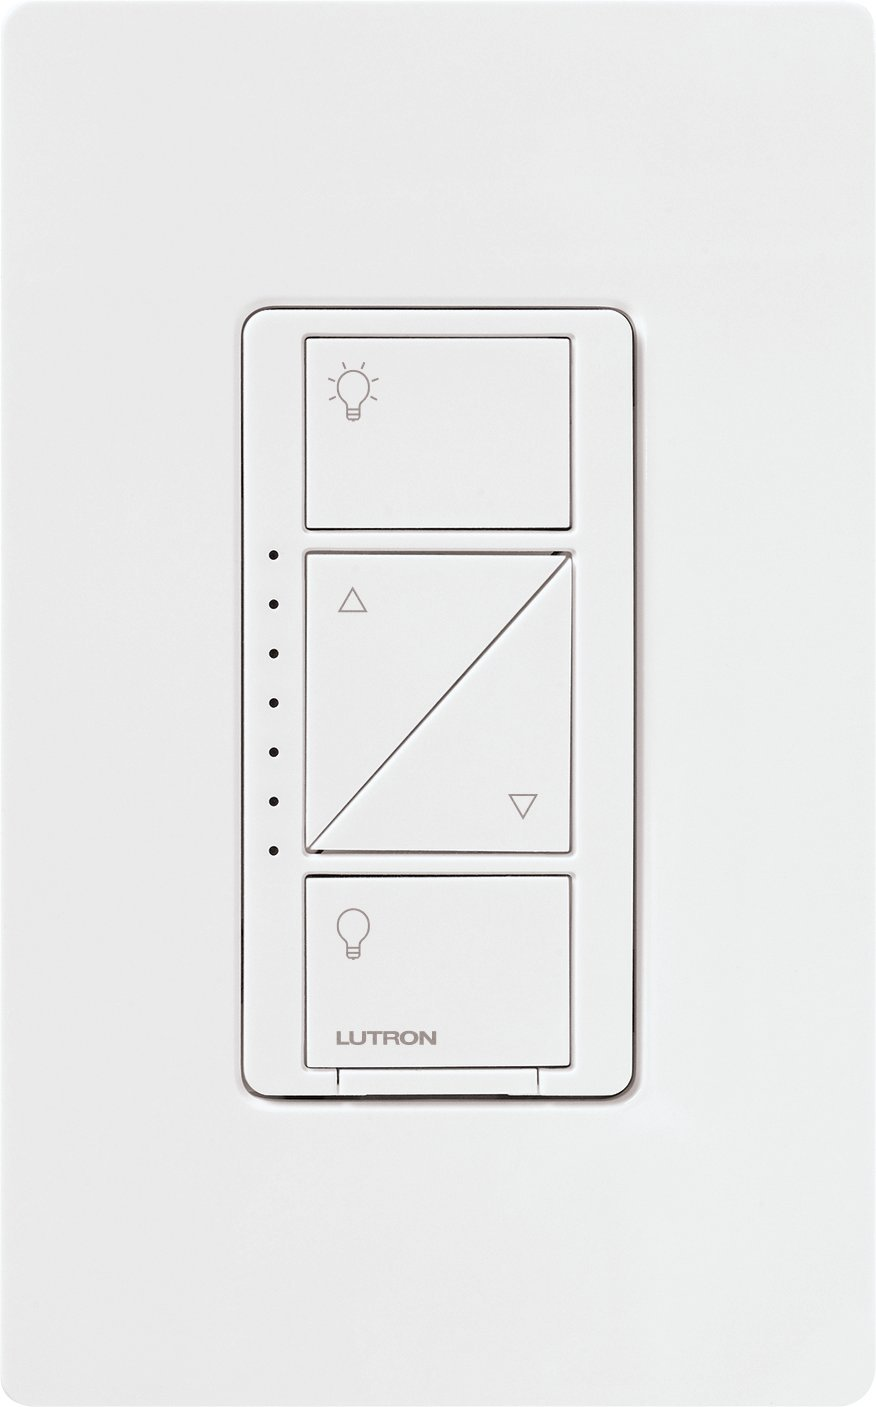 Lutron Caseta Wireless Smart Lighting Dimmer Switch and Remote Kit for Wall & Ceiling Lights, P-PKG1W-WH, White, Works with Alexa, Apple HomeKit, and the Google Assistant by Lutron (Image #2)